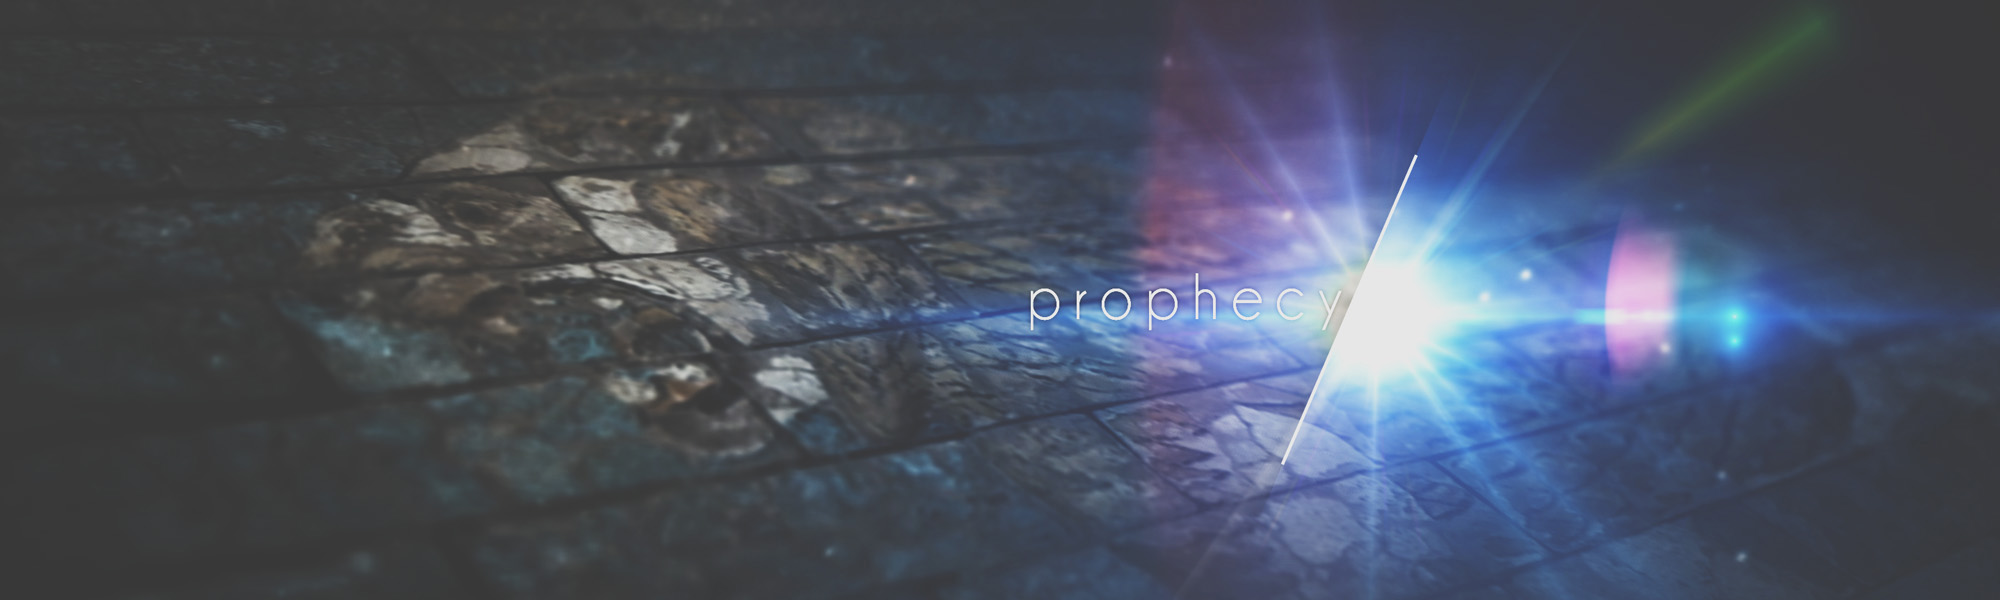 Header Design - Prophecy.jpg